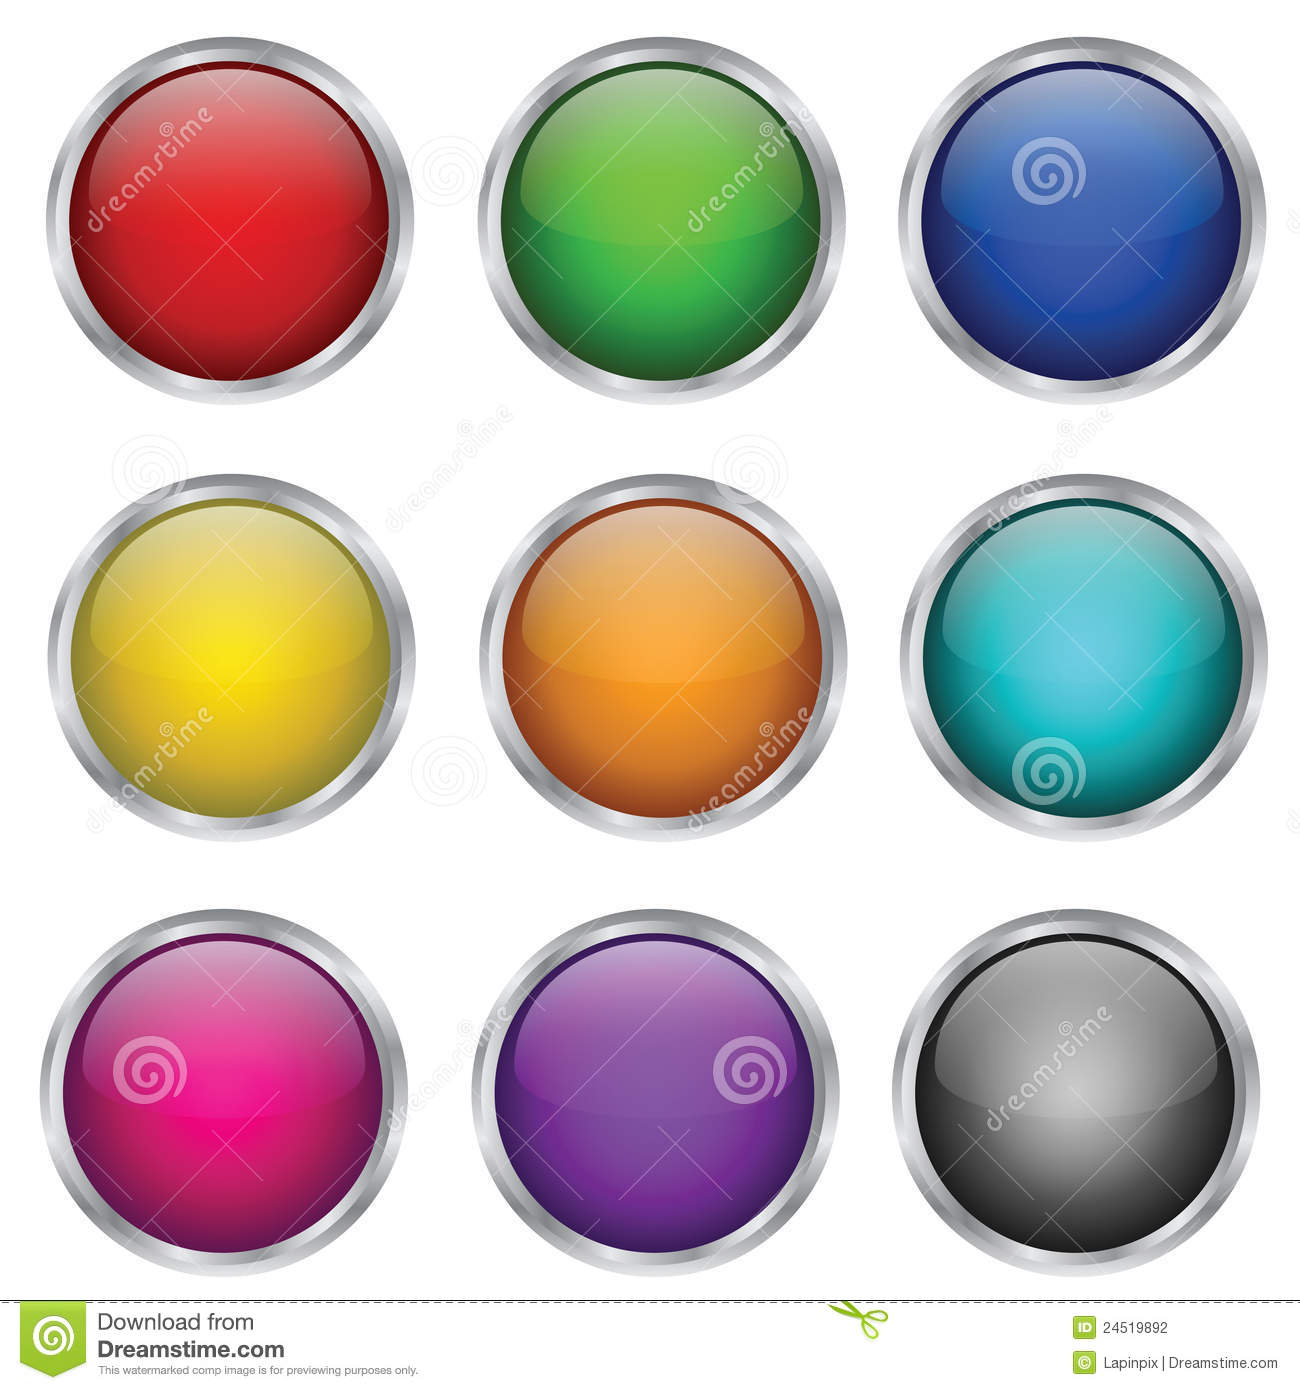 Download Vector Set Of Round Glass Buttons Stock Vector - Illustration of object, empty: 24519892